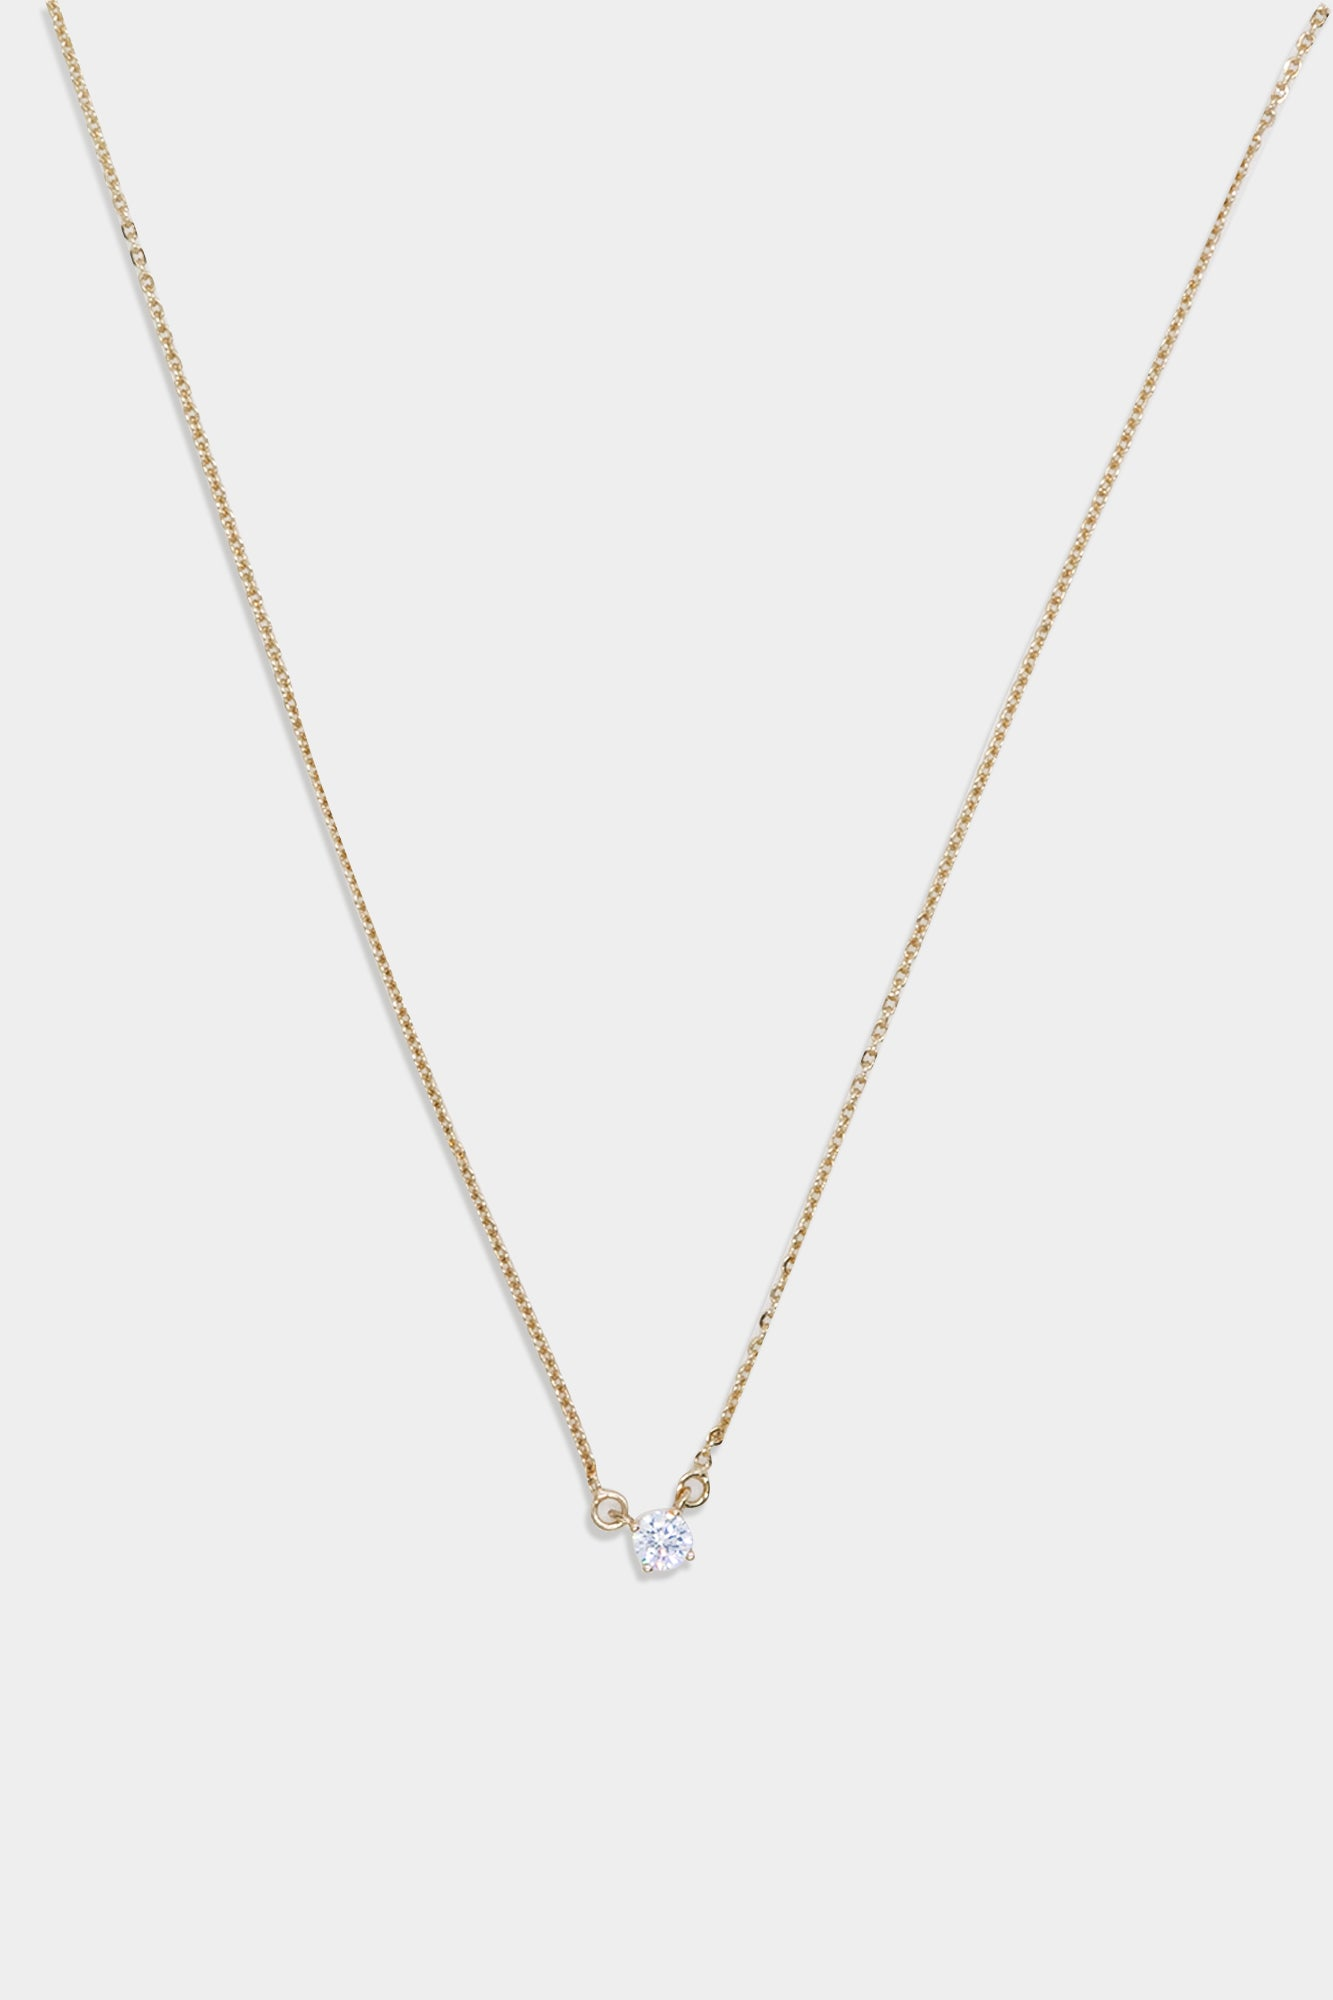 Olivia Gold Necklace